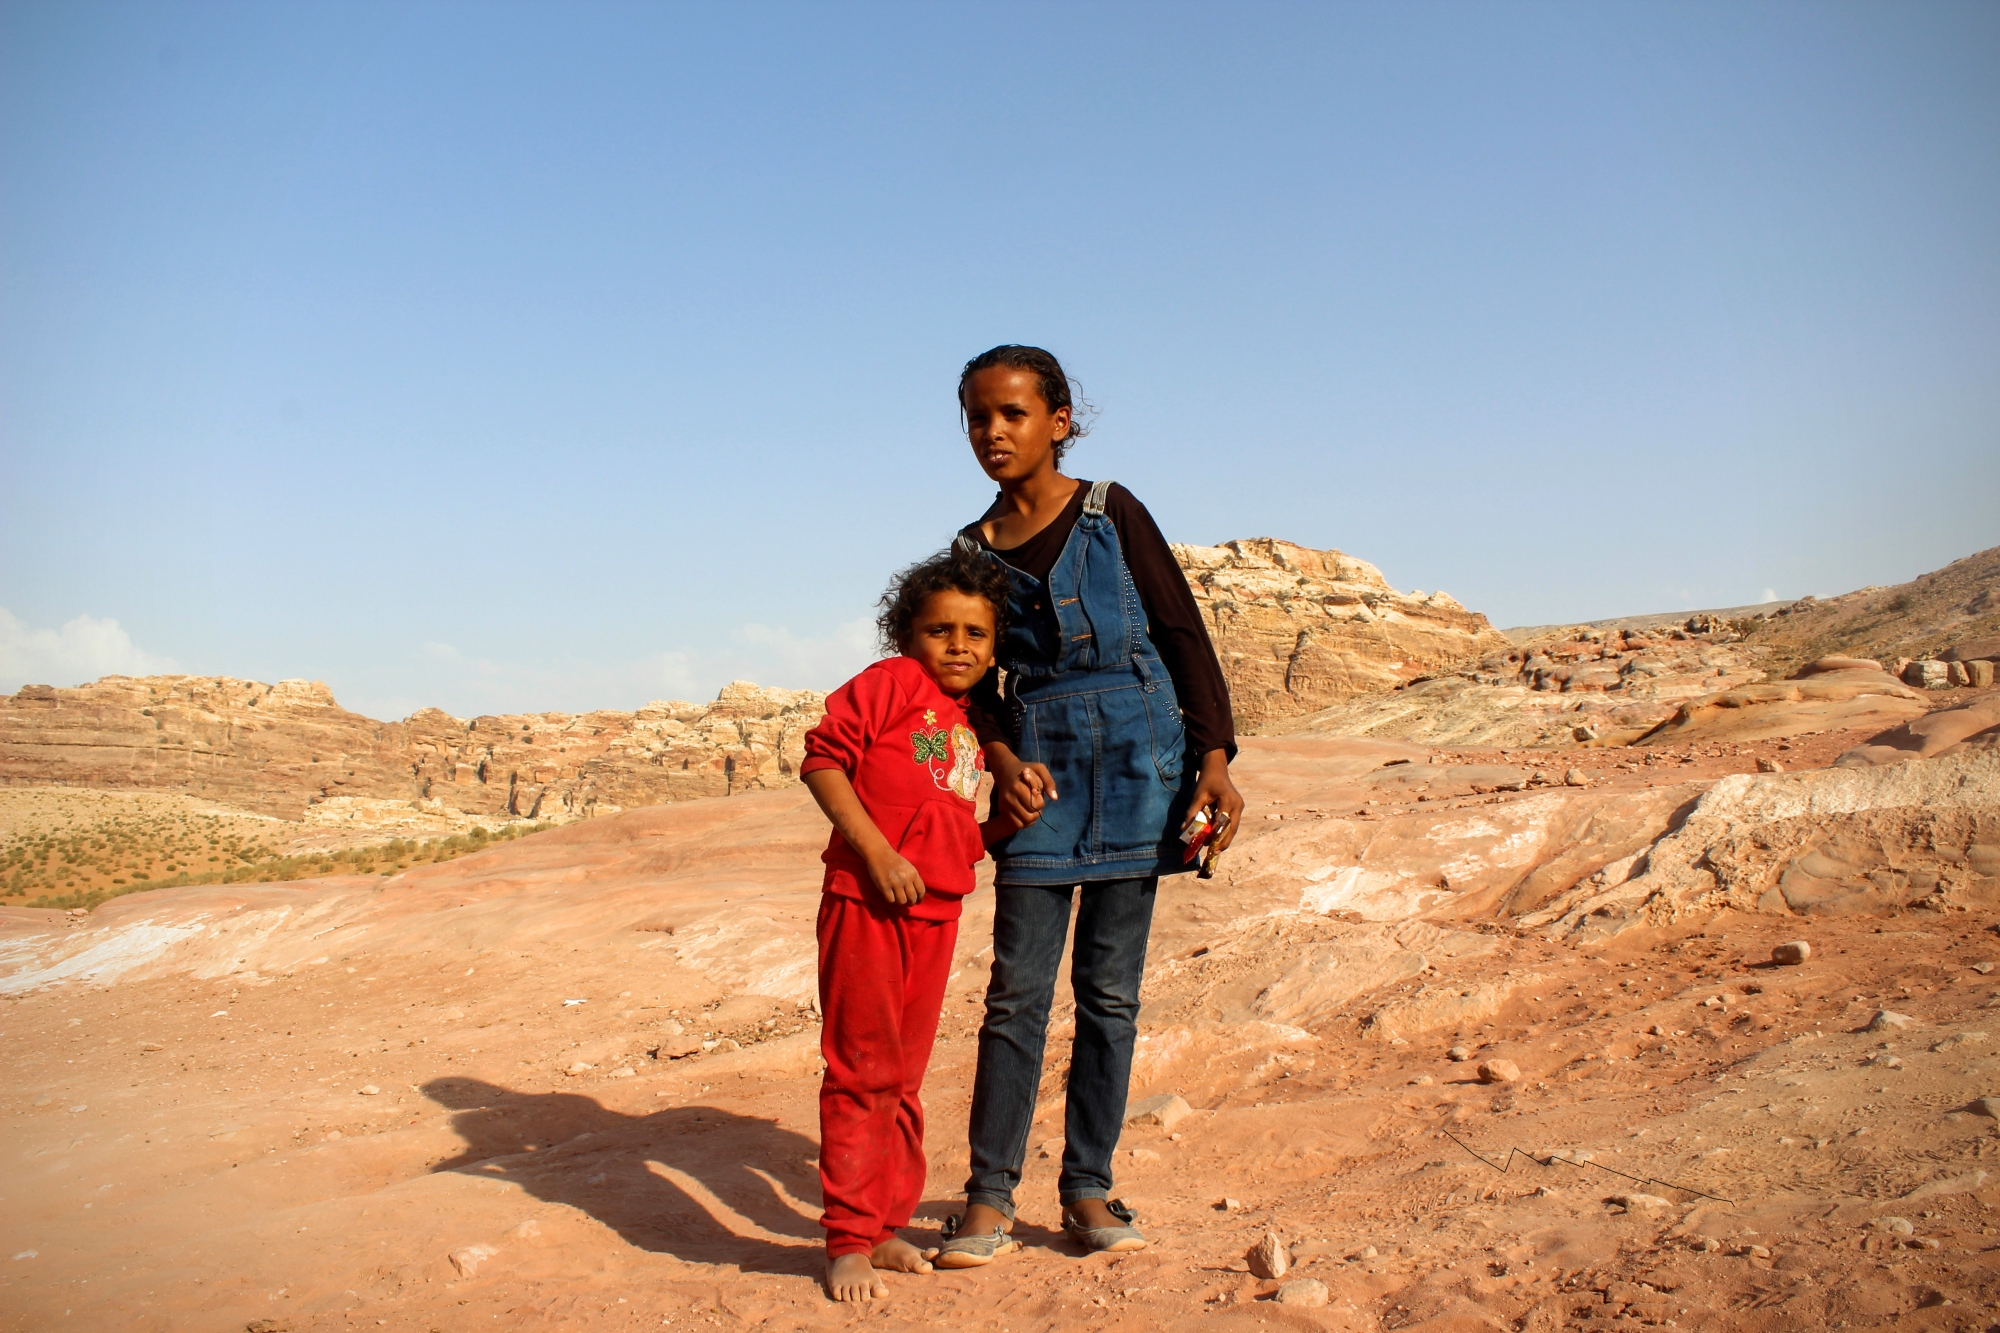 When the little Bedouin girl asked for money, her older sister told her to stop. We agreed on candy instead.